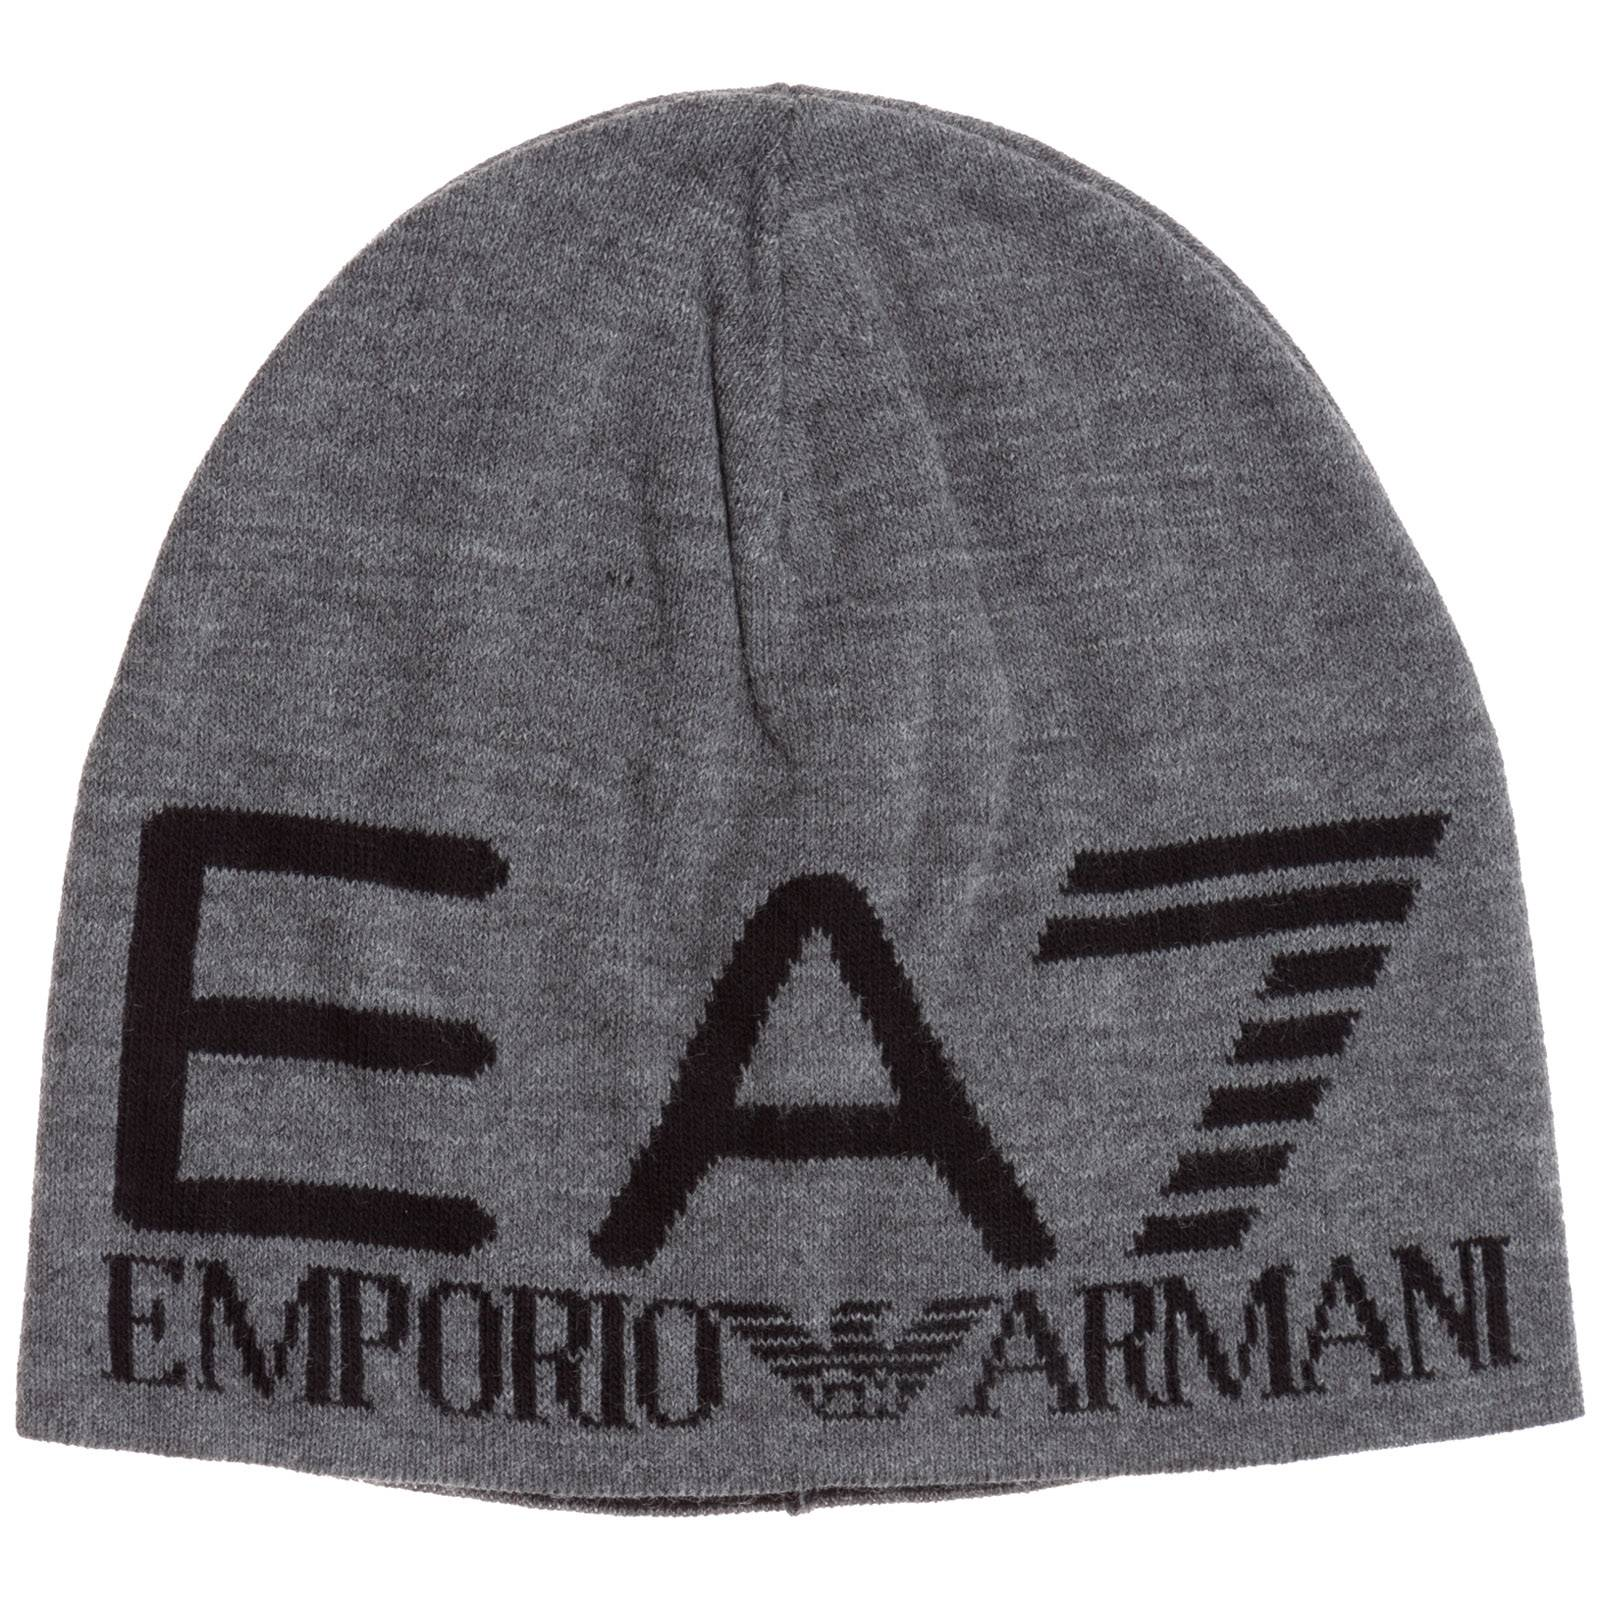 Emporio Armani Men's beanie hat  - Grey - Size: Medium